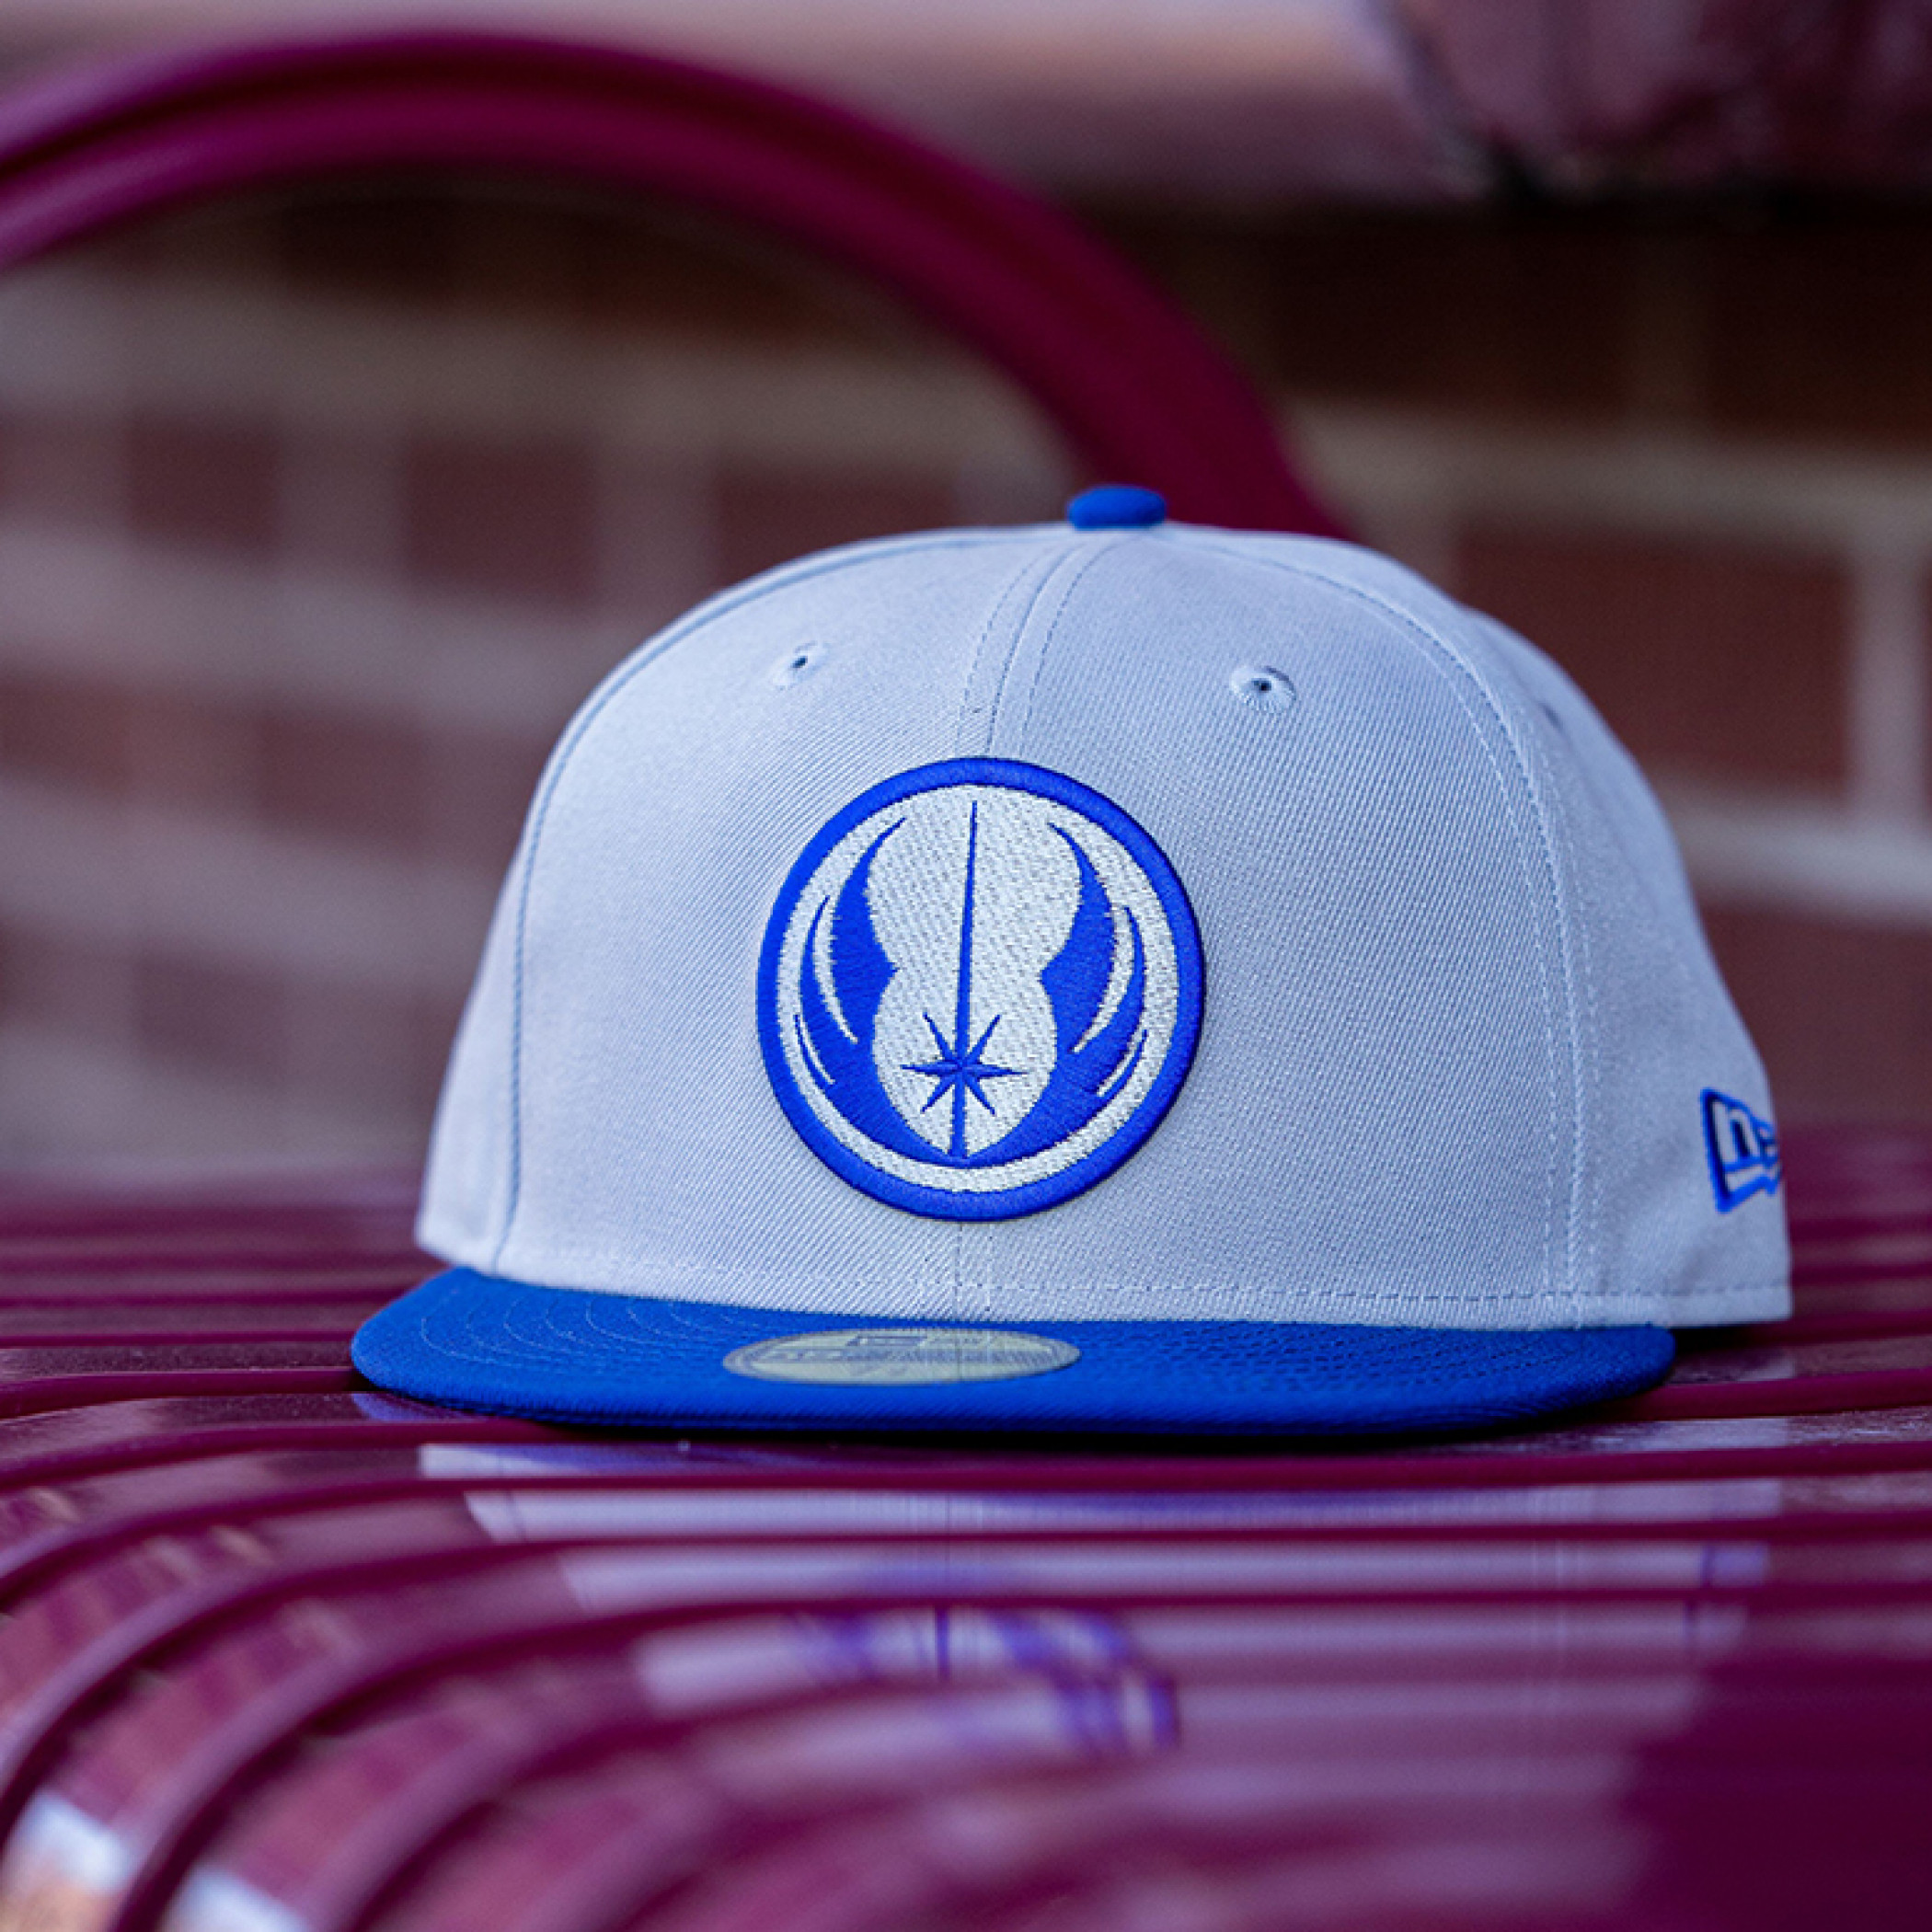 Star Wars Jedi Order Symbol New Era 59Fifty Hat